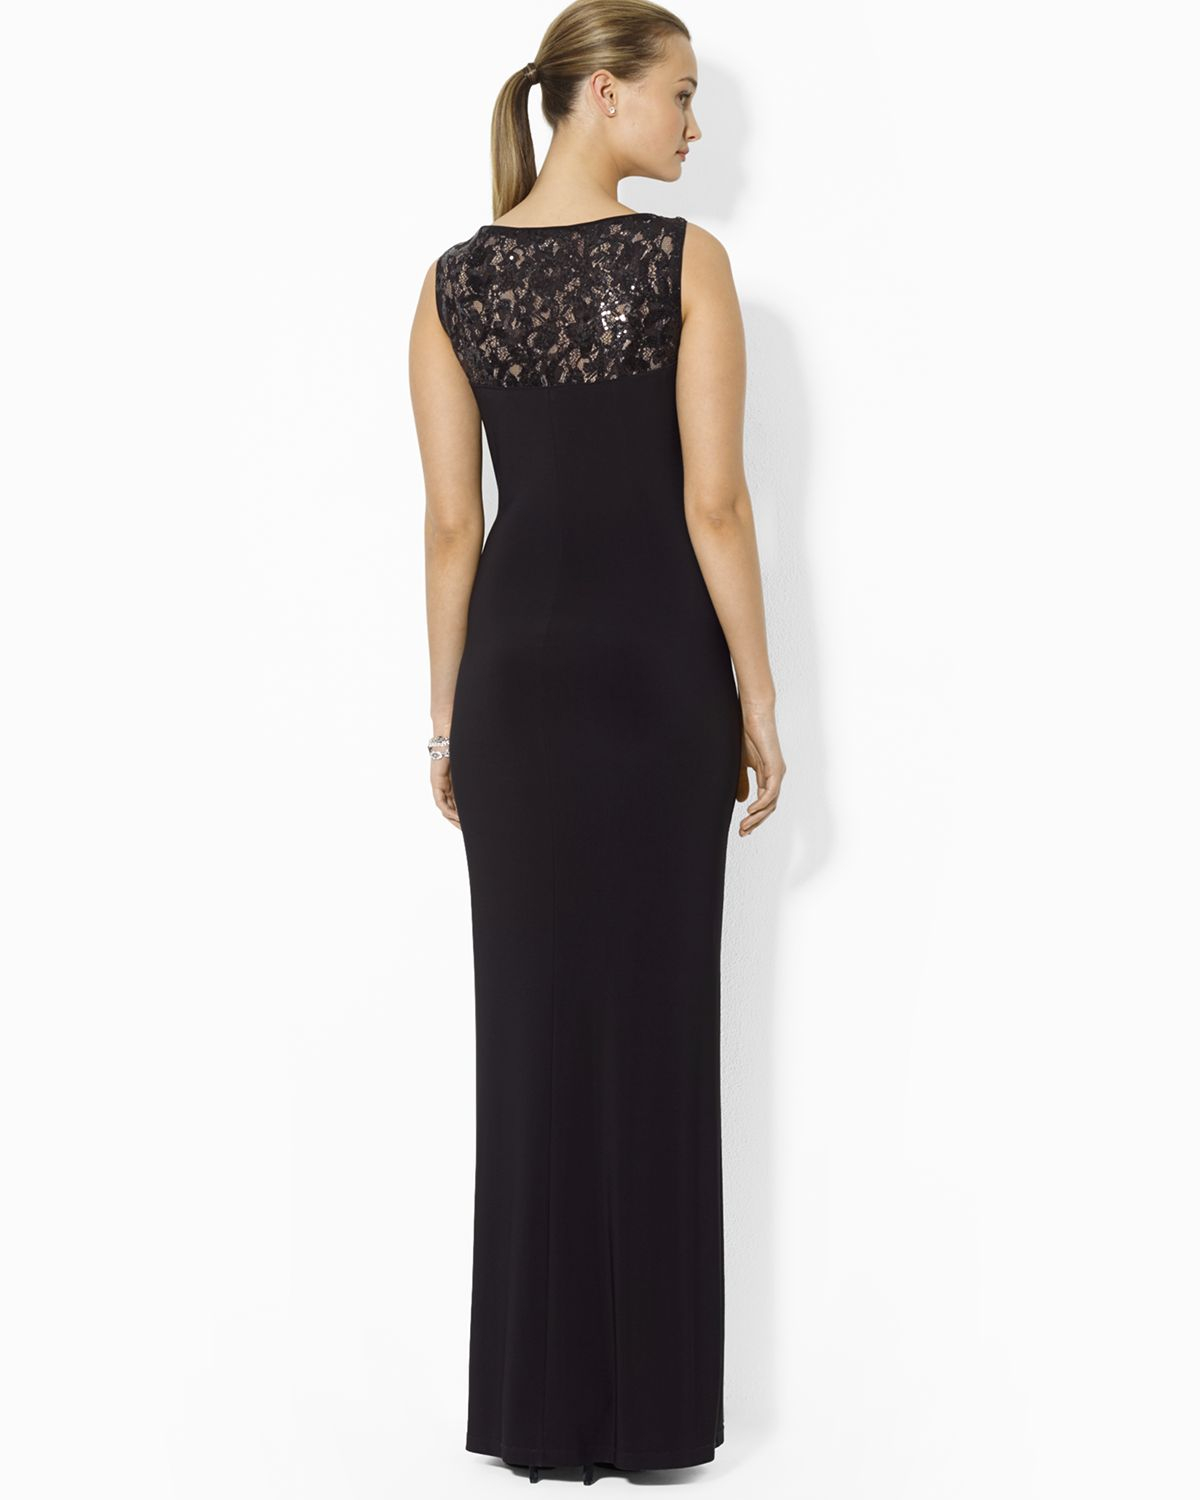 Lyst - Ralph Lauren Lauren Gown V Neck Sequin Lace Inset Jersey in Black